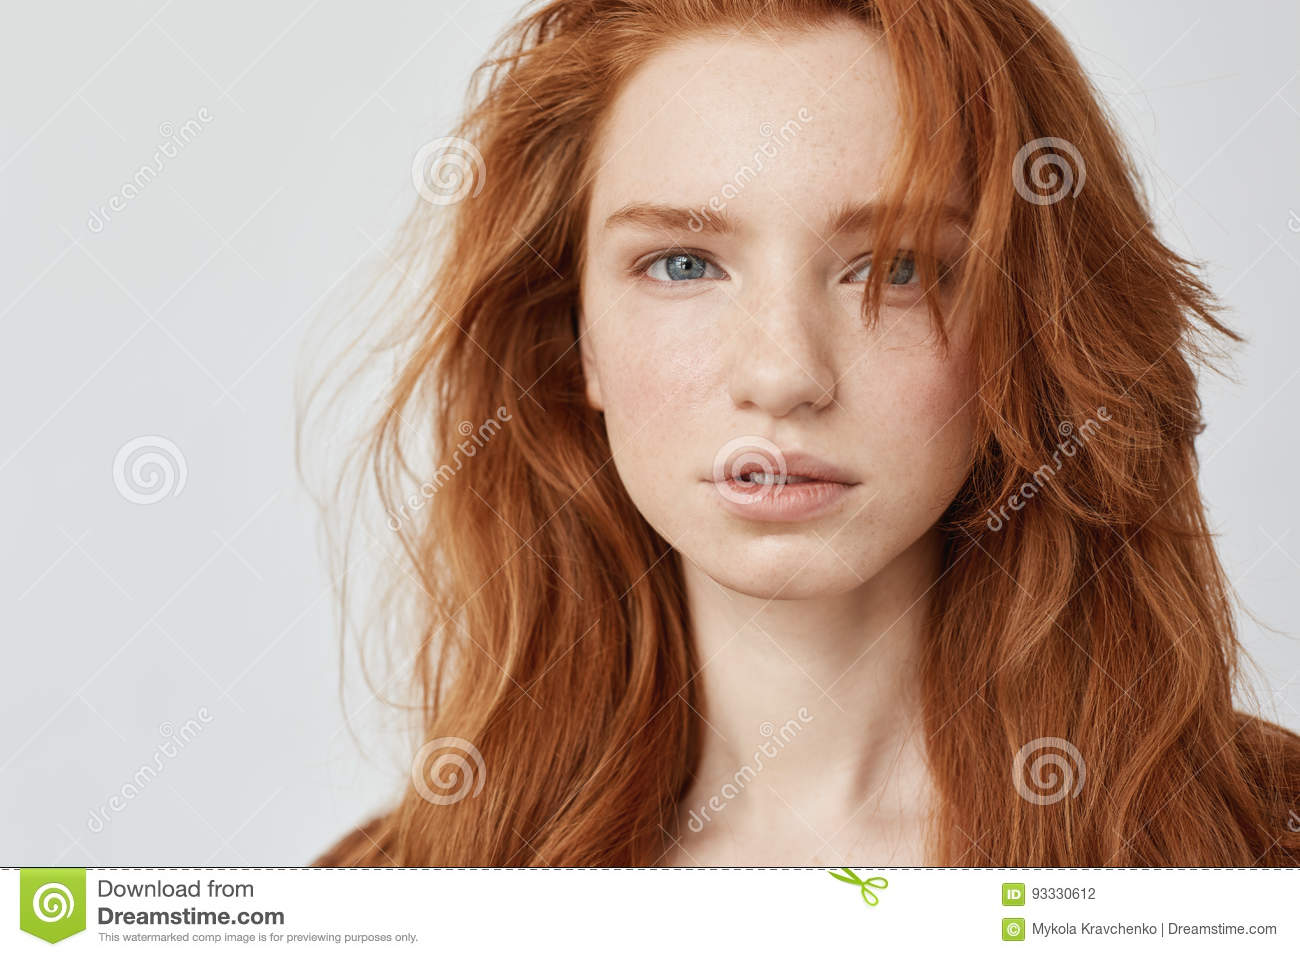 Model picture of redhead consider